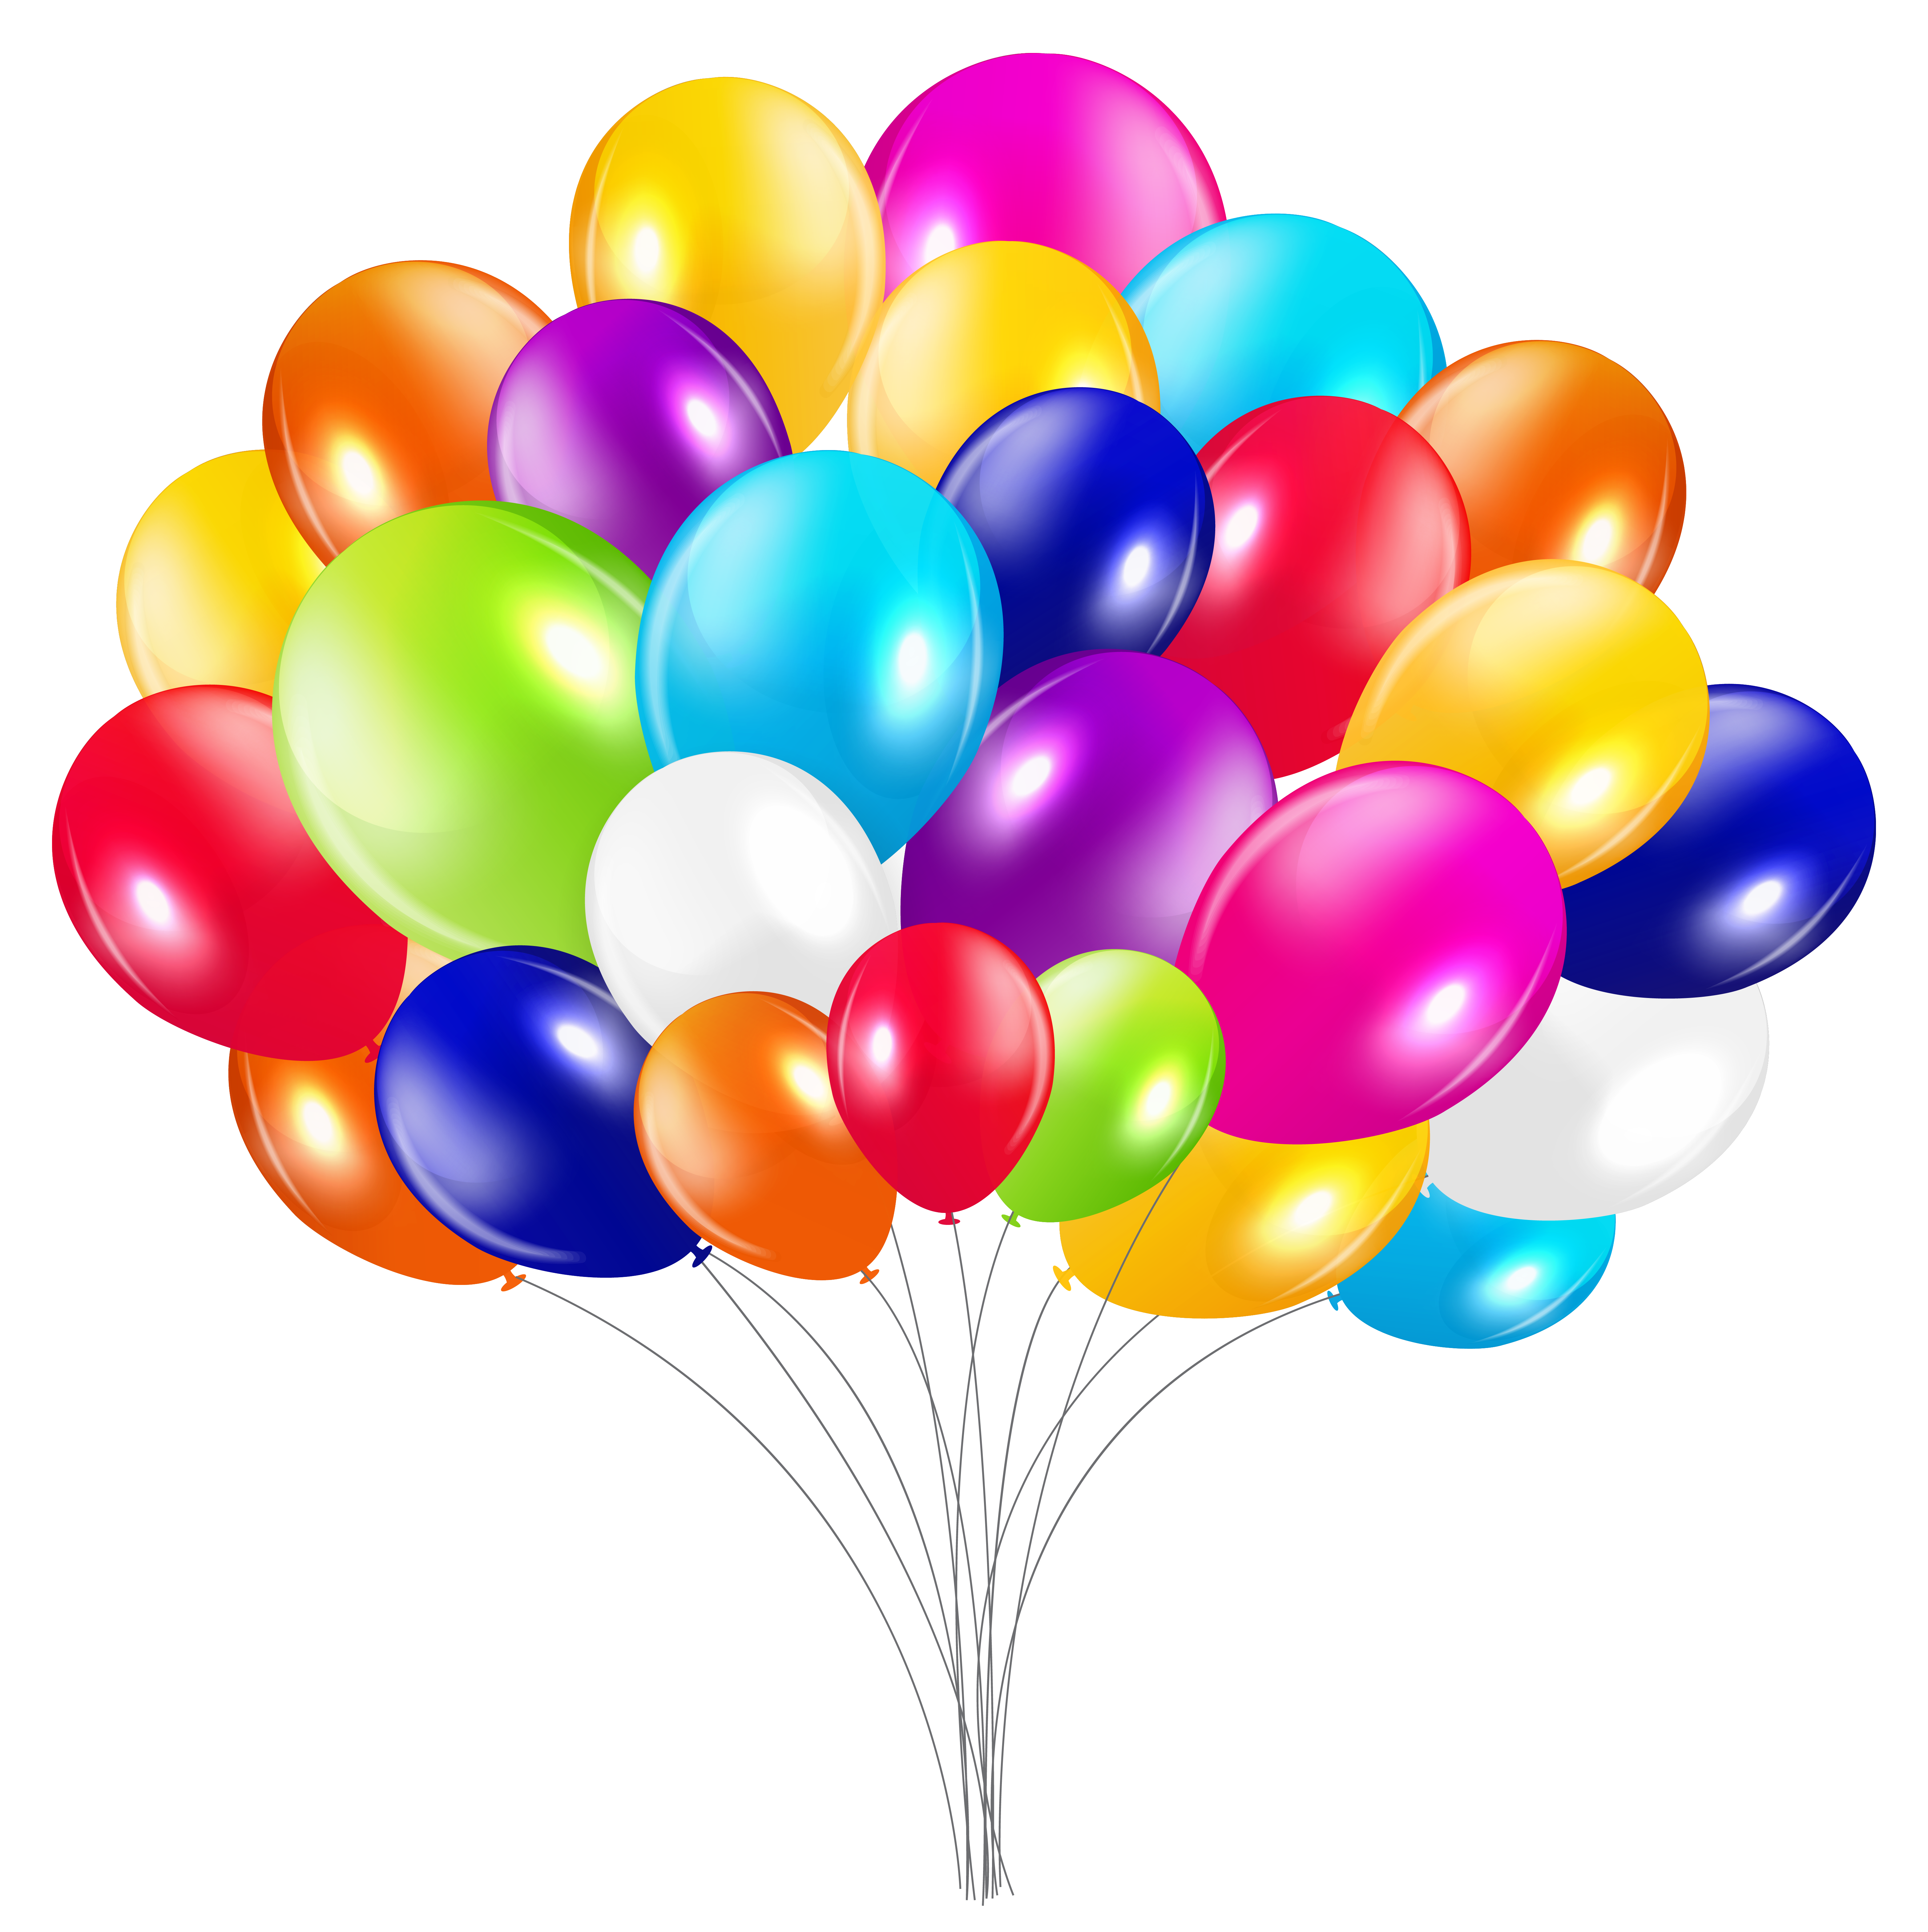 Balloon bouquets clipart clipart transparent download Pin by D Gangadhar on Adobe photoshop | Balloons, Balloon pictures ... clipart transparent download